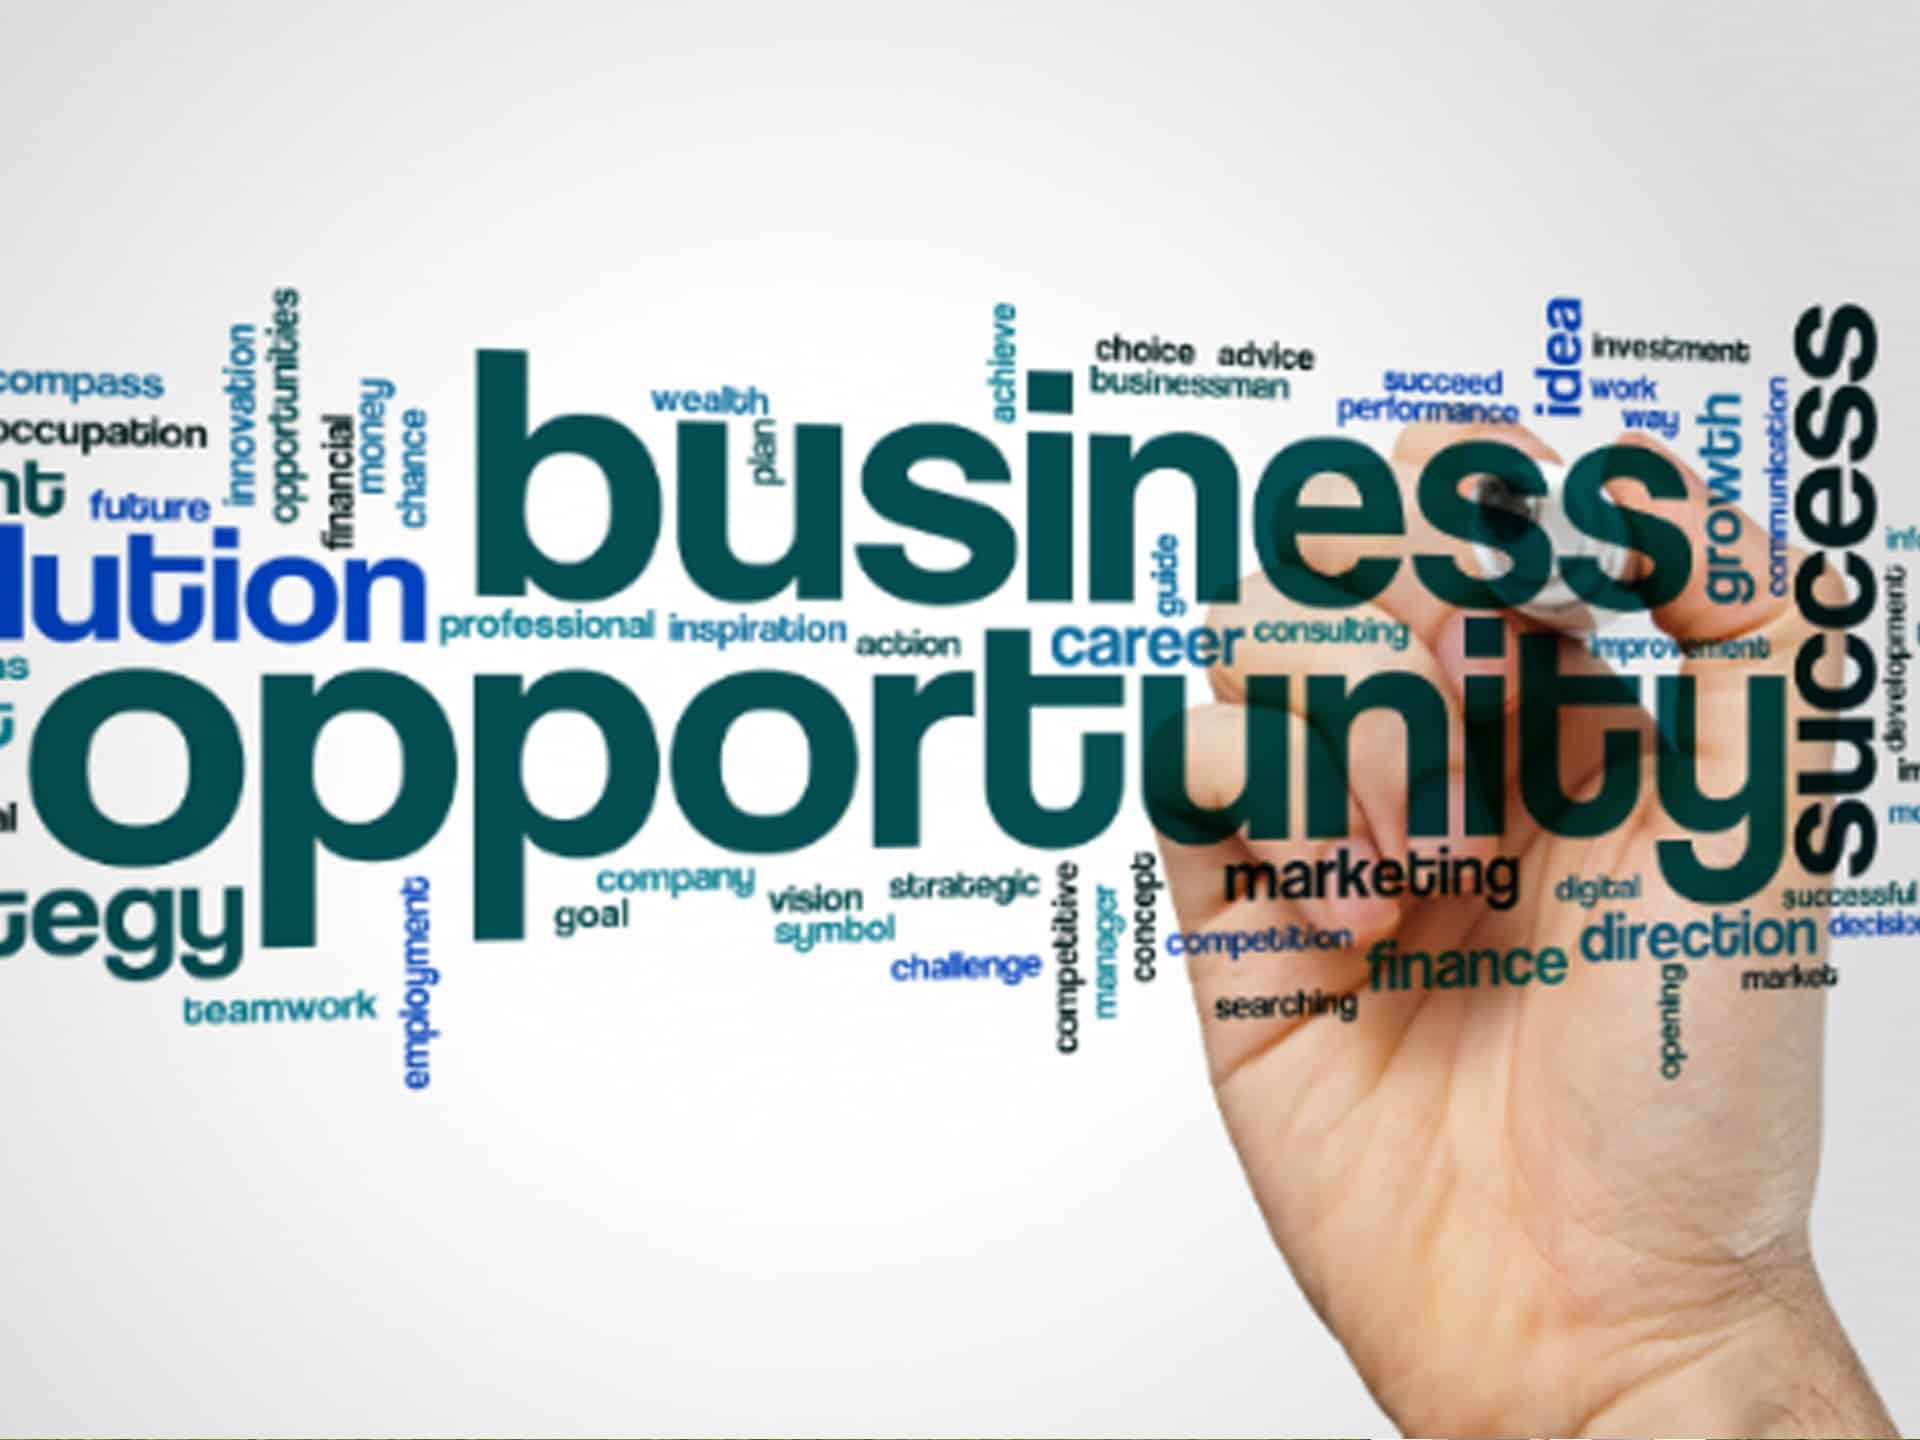 Opportunities and Business Challenge